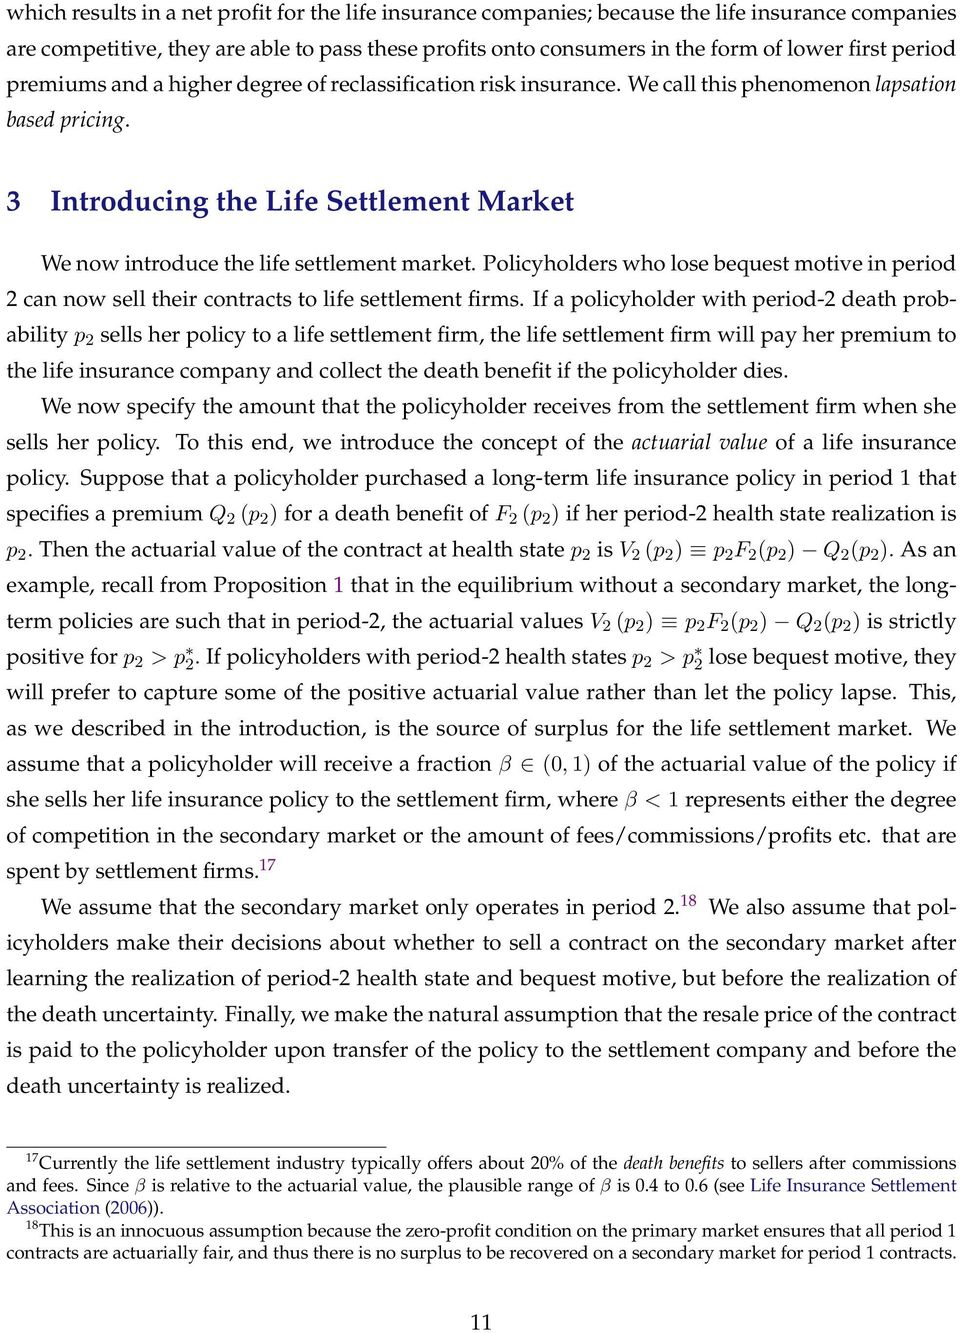 3 Introducing the Life Settlement Market We now introduce the life settlement market. Policyholders who lose bequest motive in period 2 can now sell their contracts to life settlement firms.